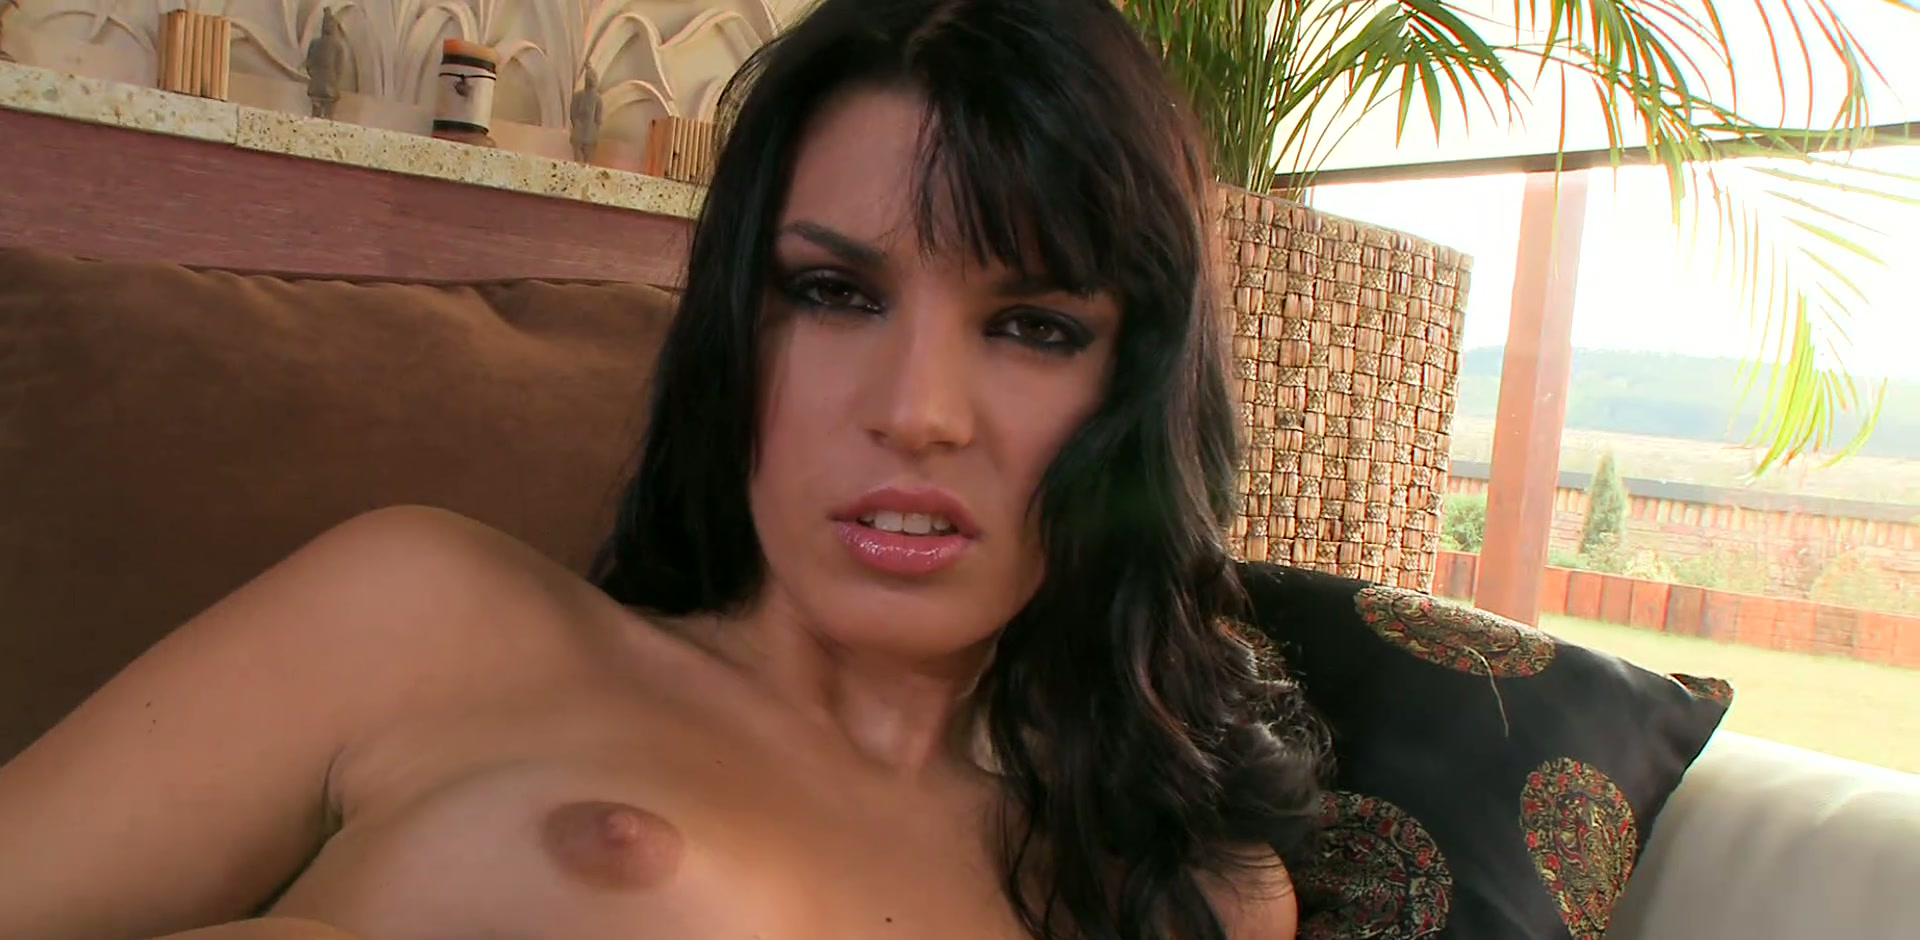 charo pictures lopez nude of